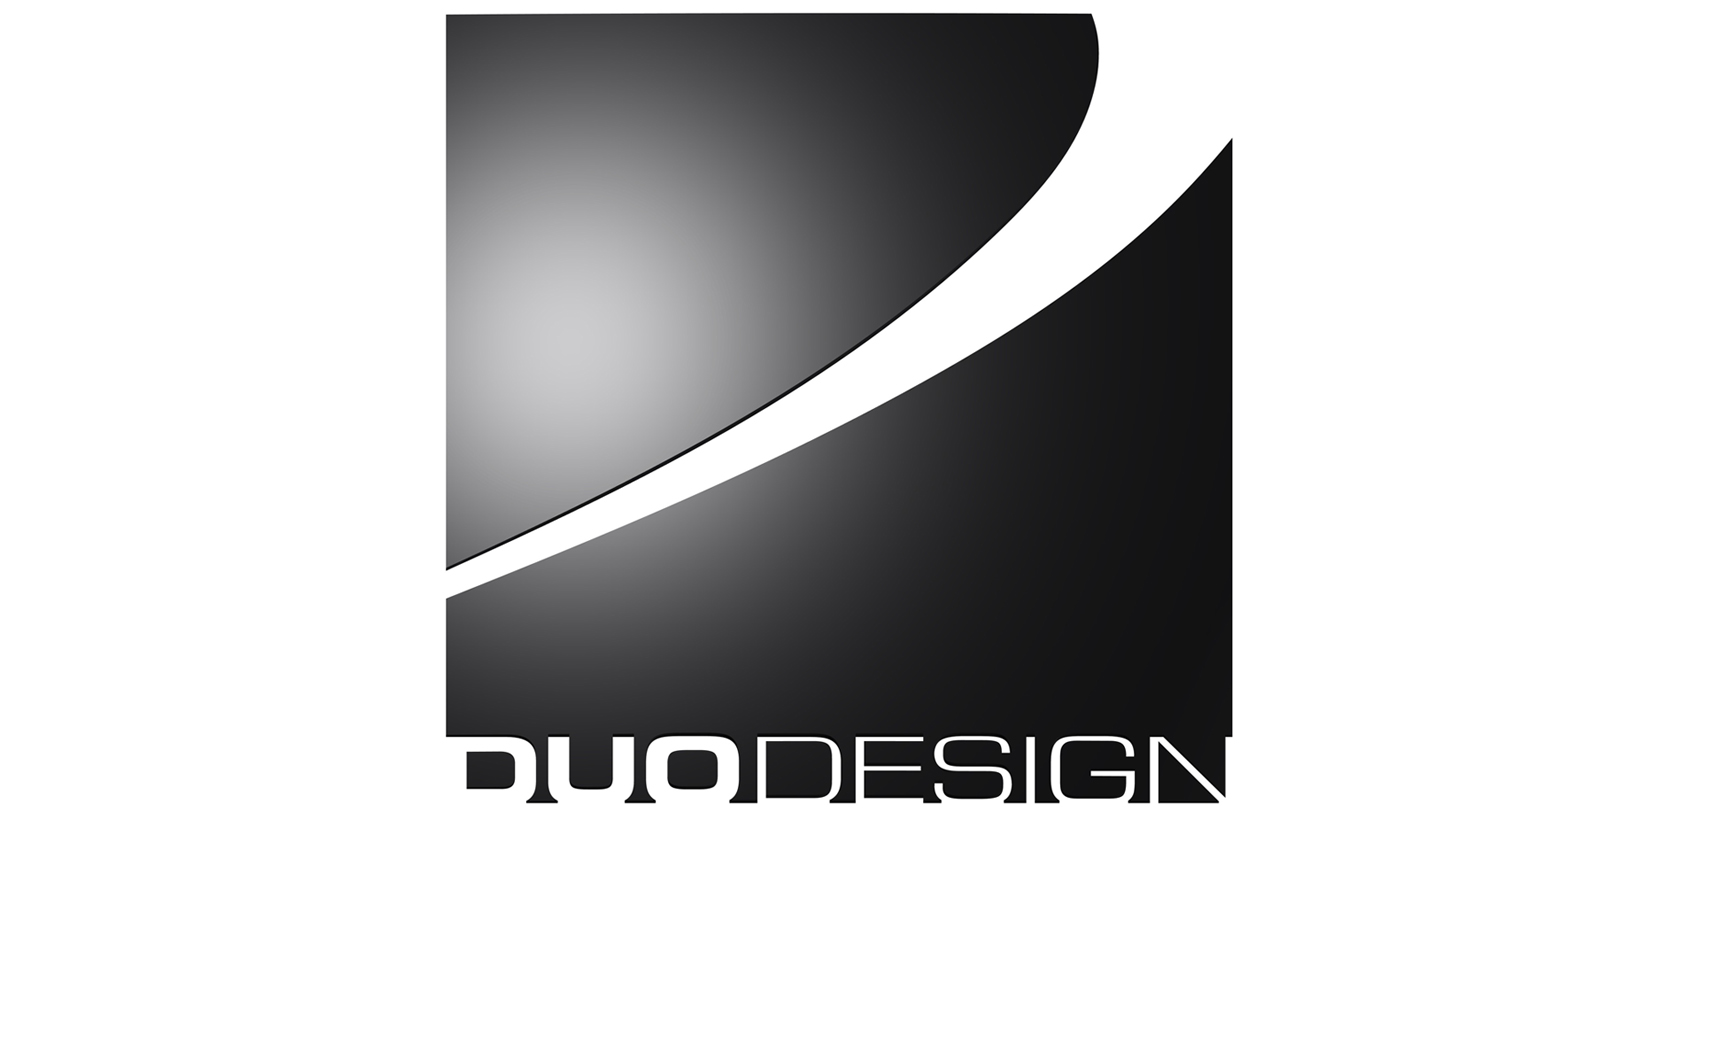 DuoDesign Industriedesign